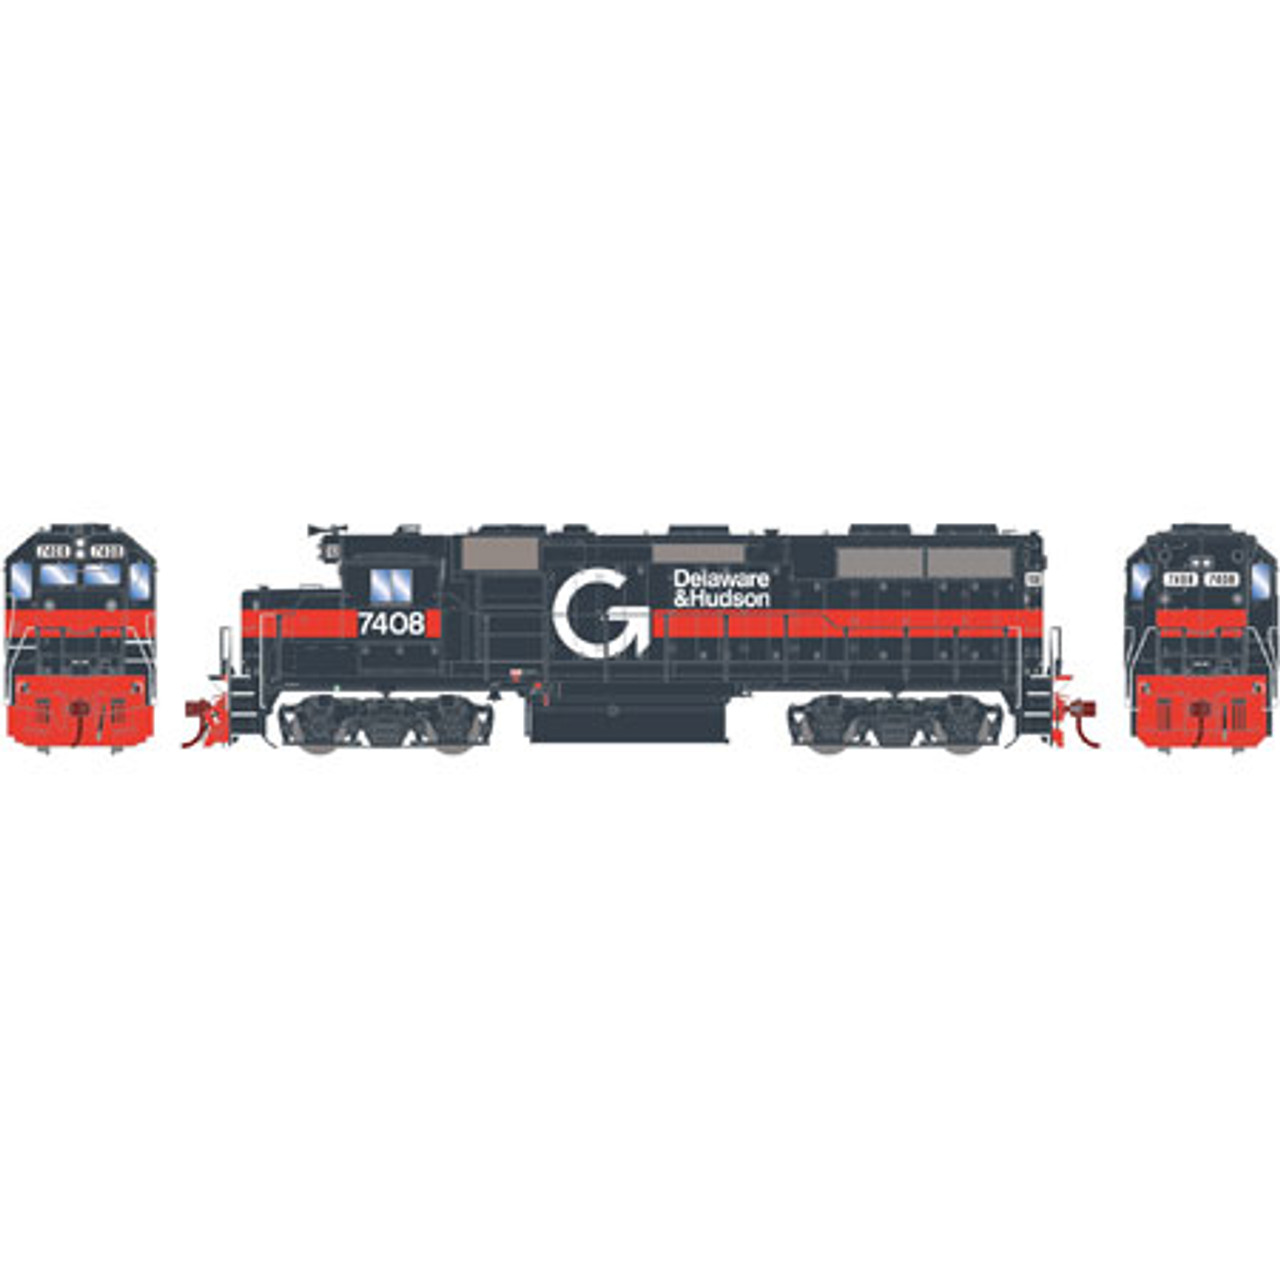 Athearn ATHG65608 GP39-2 Phase I D&H - Guilford #7408 with DCC & Sound Tsunami2  (SCALE=HO)  Part #ATHG65608